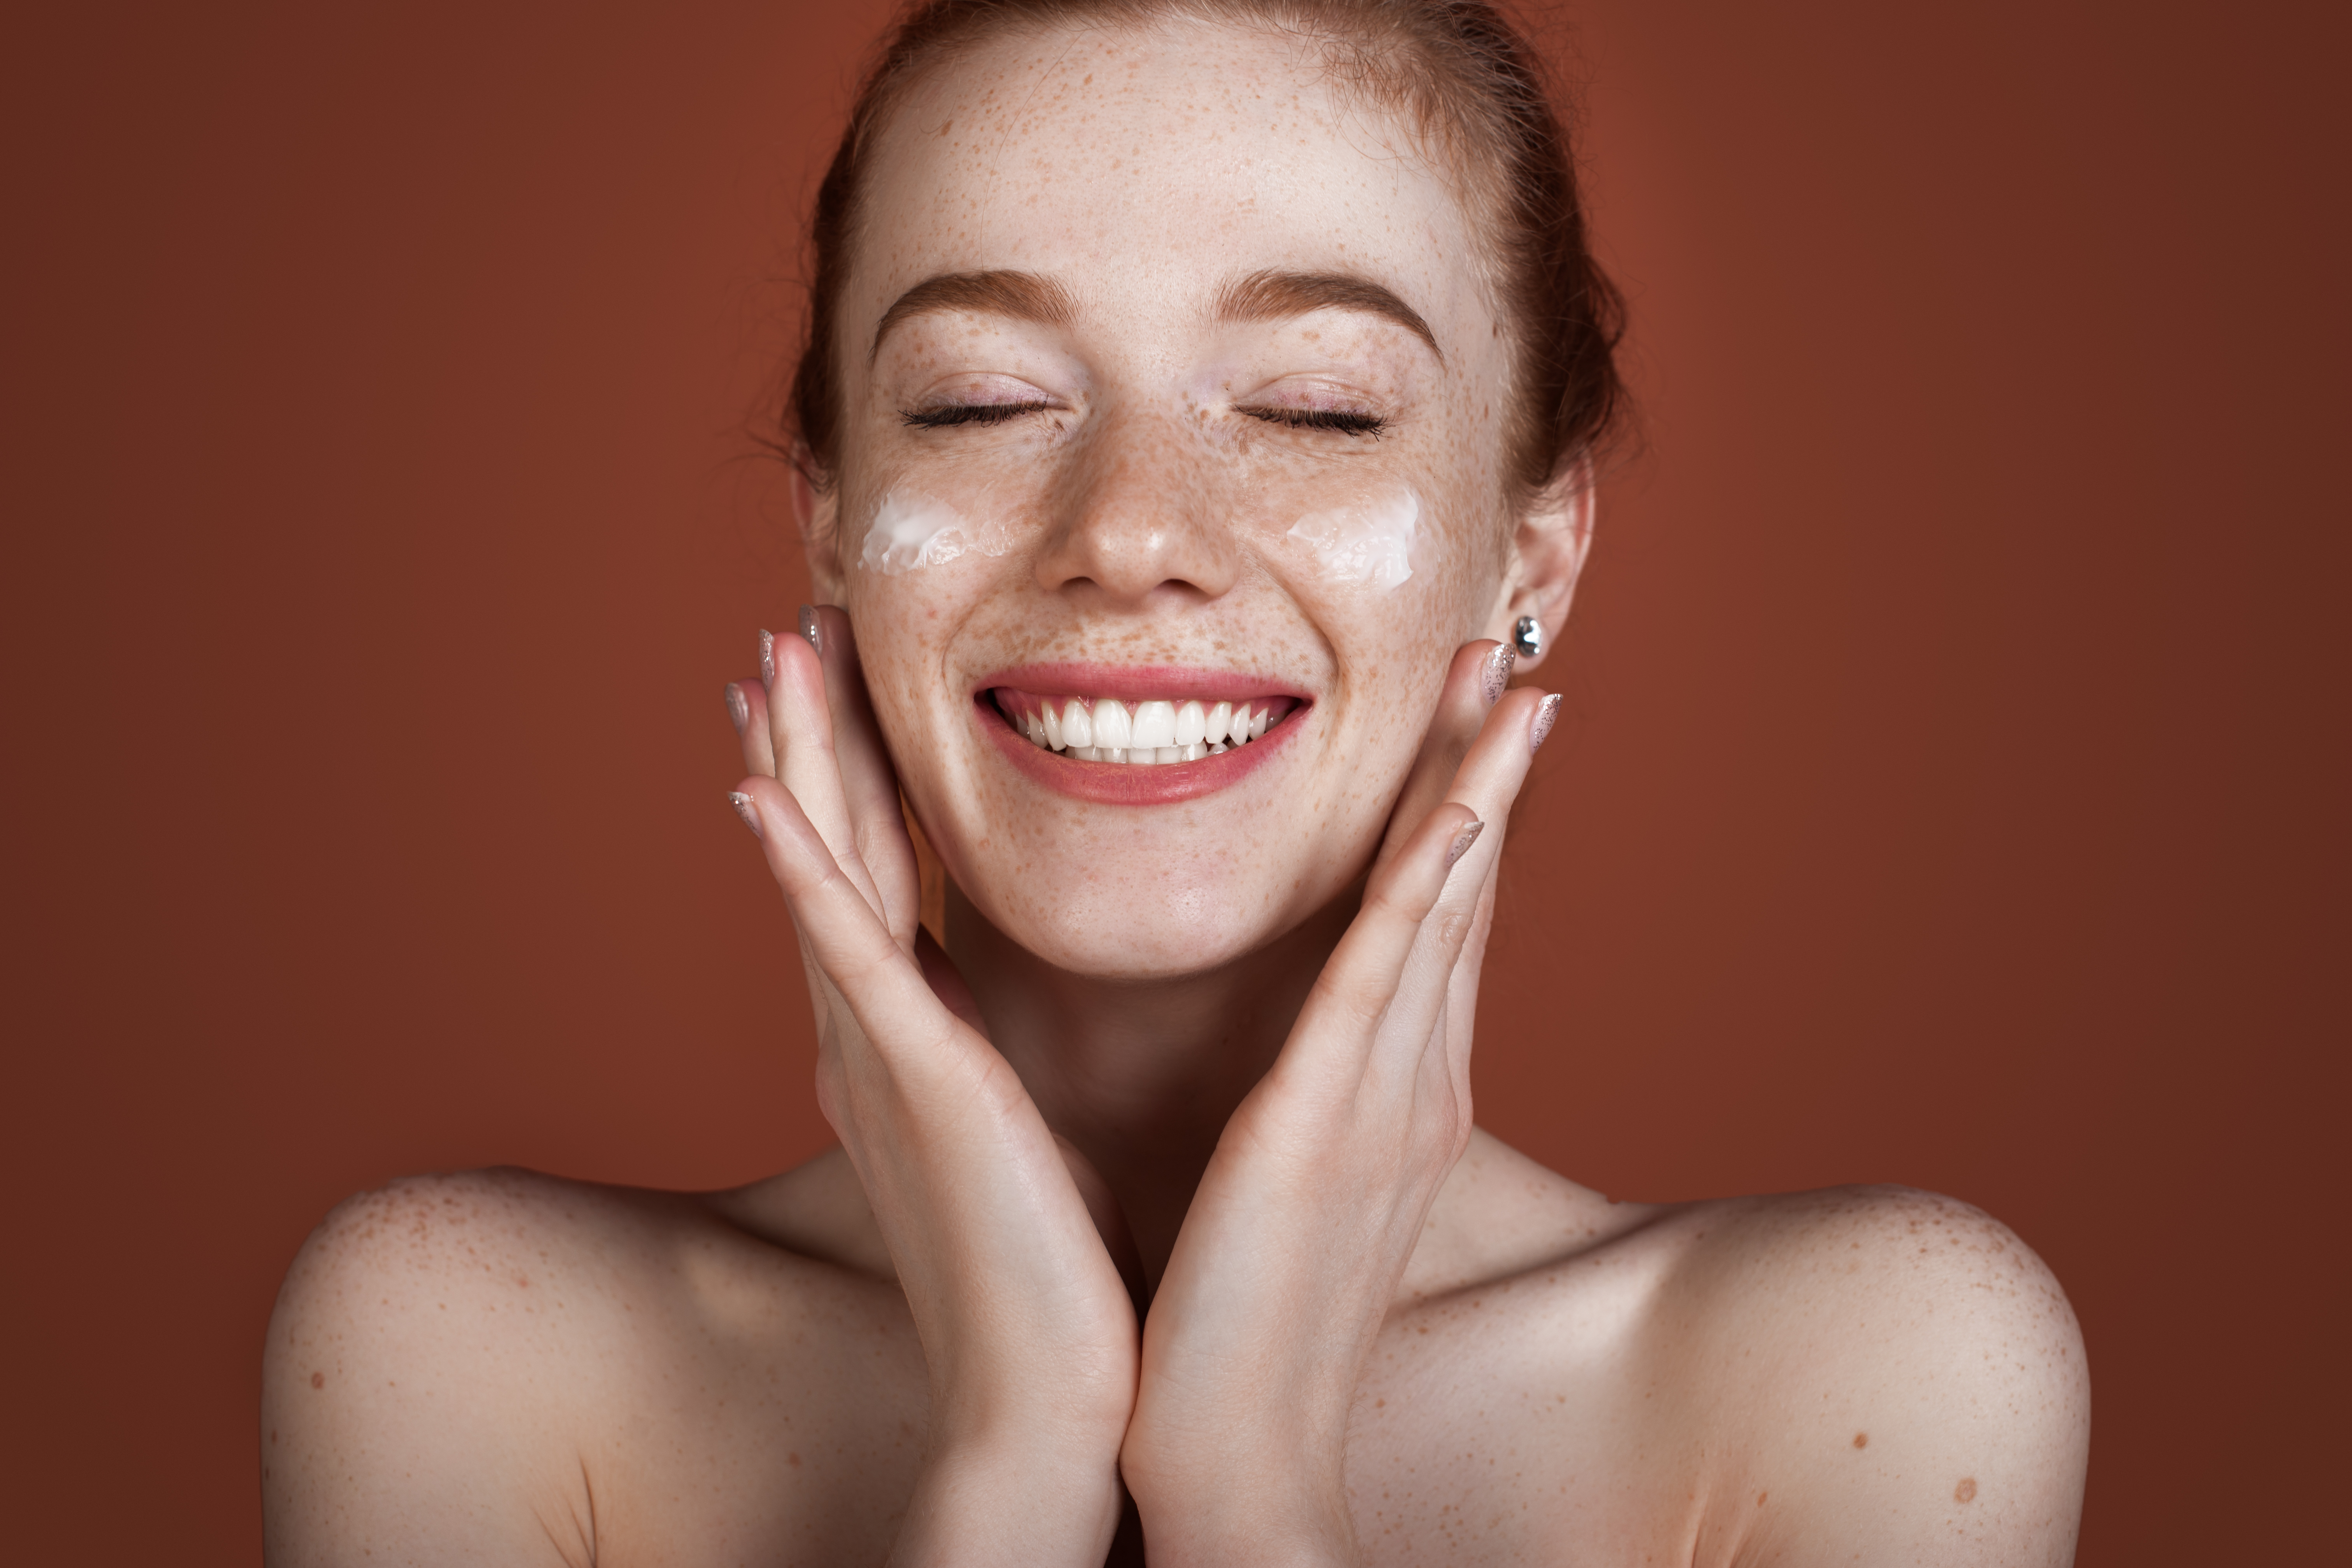 Smiling caucasian ginger lady with freckles applying anti aging cream on face and smile posing with naked shoulders on red studio wall